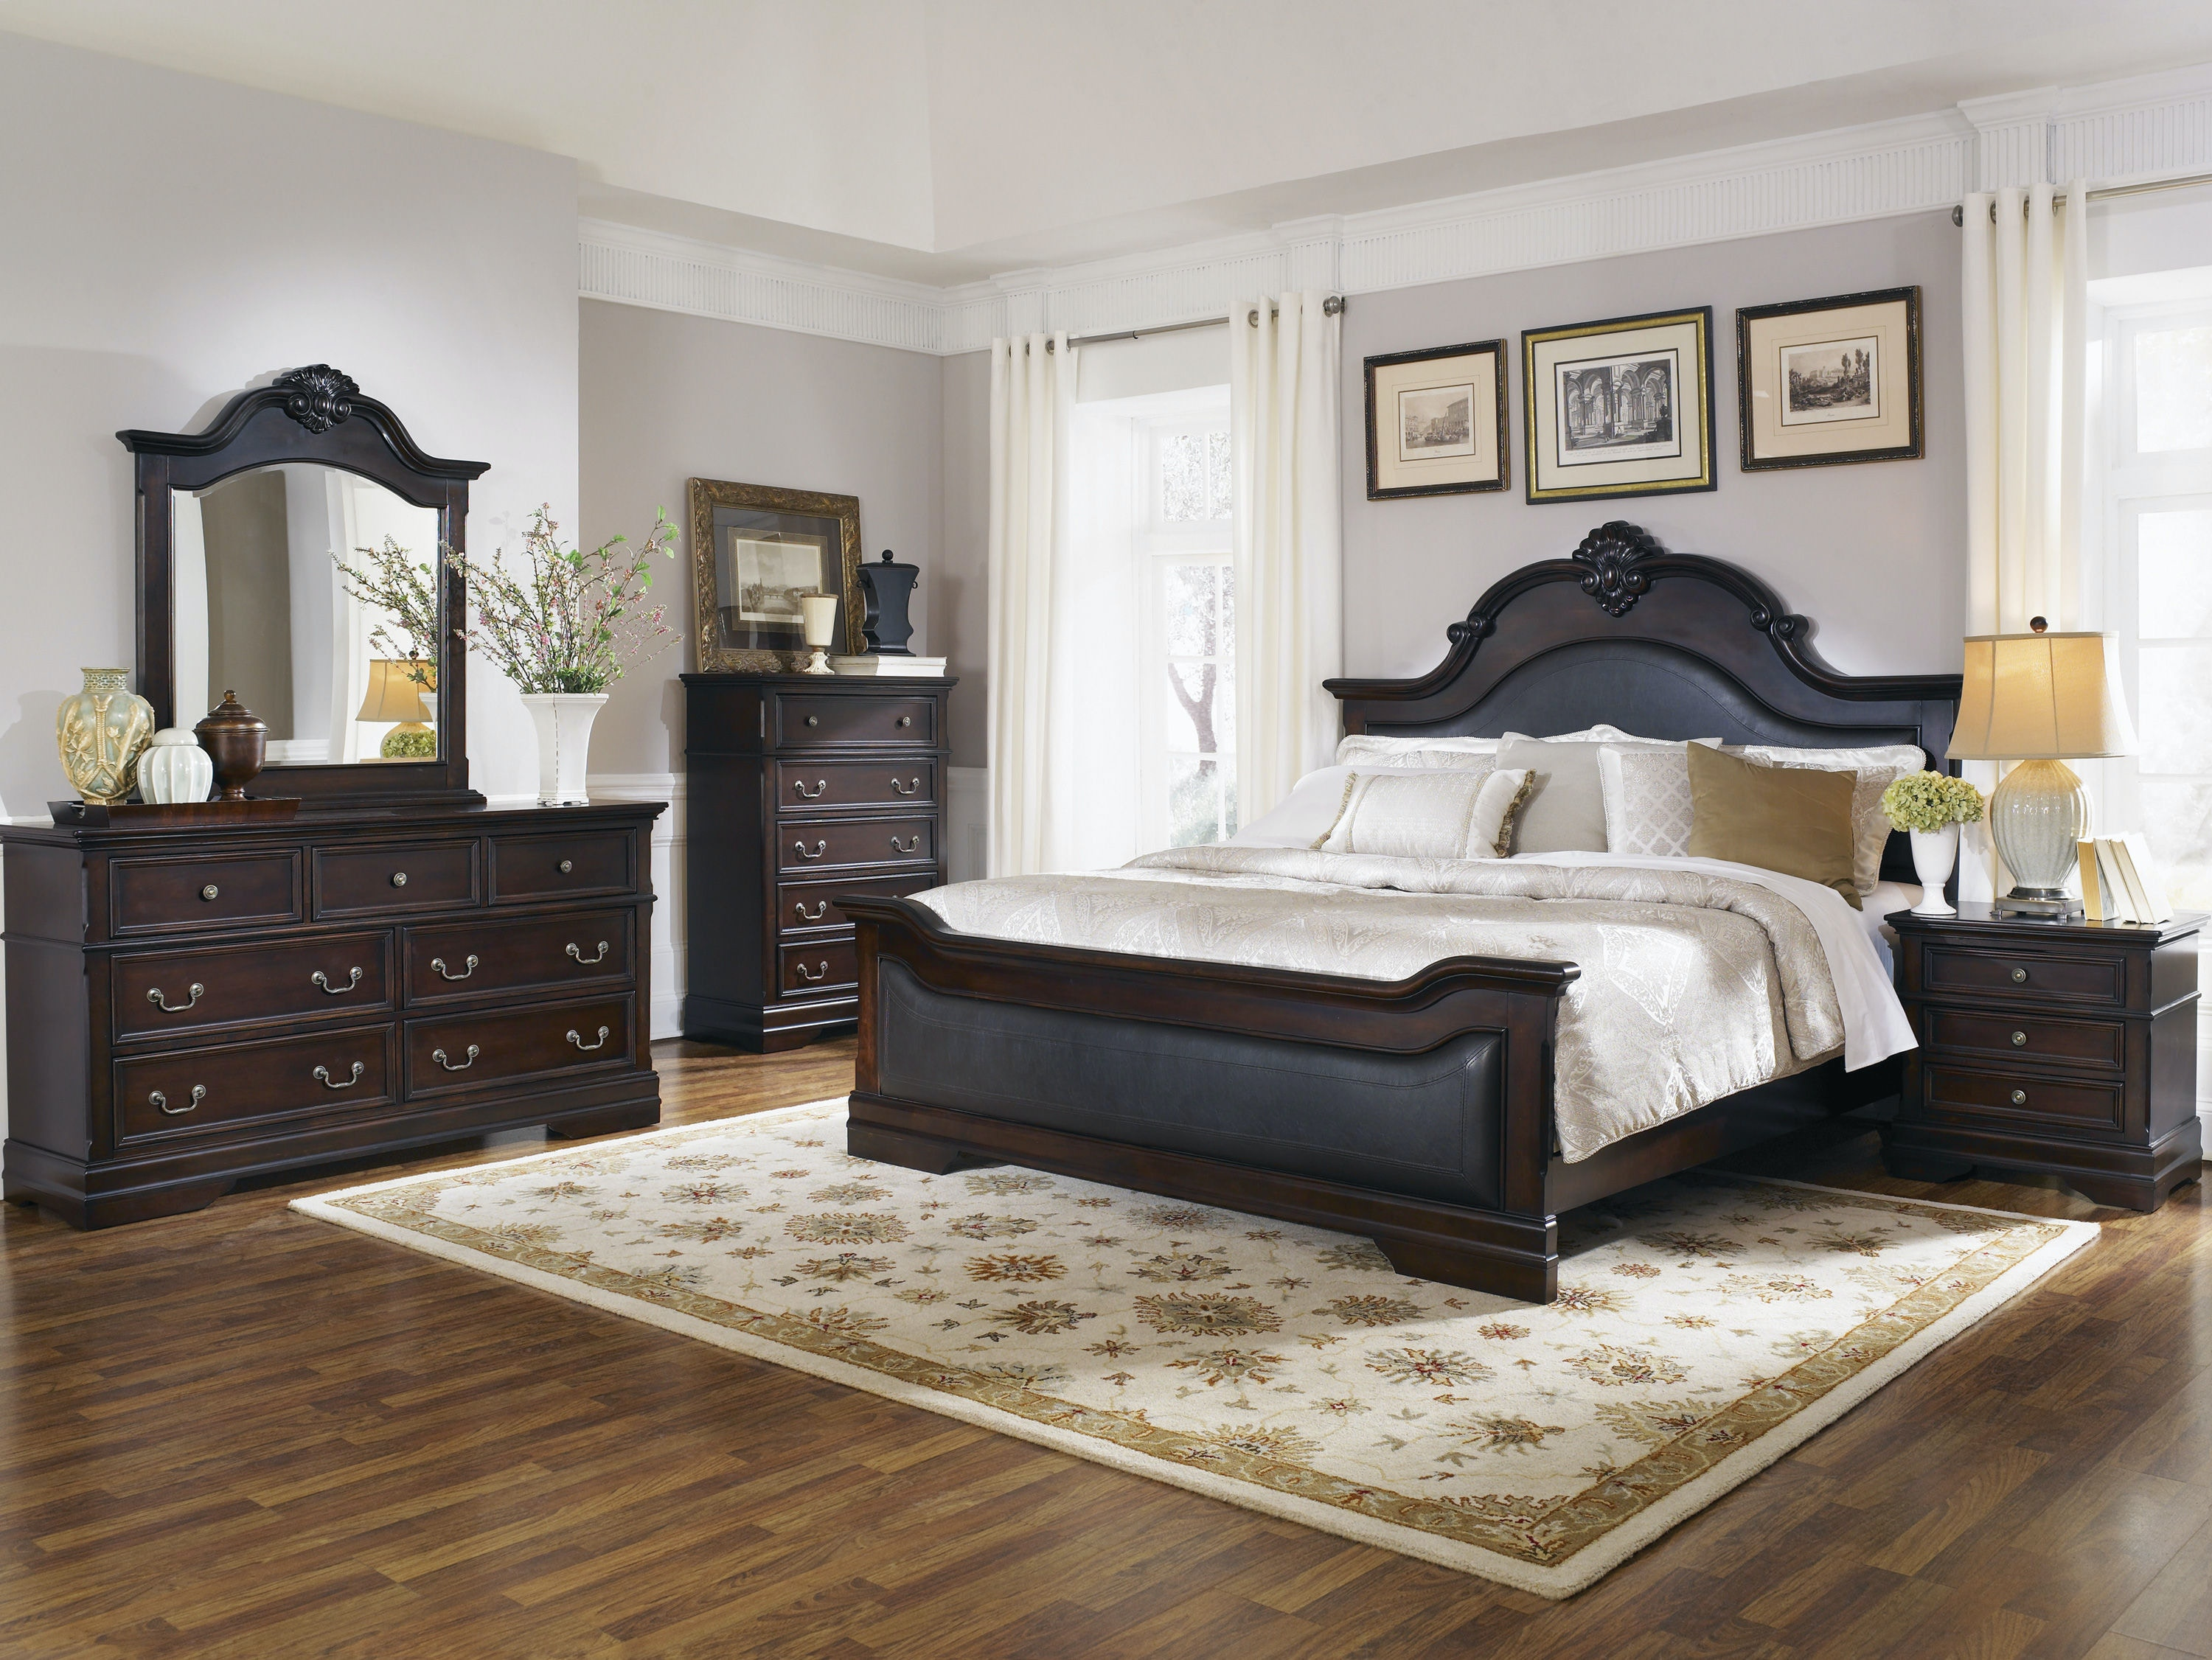 Coaster Bedroom Queen Bed 203191Q   Turner Furniture Company   Avon Park  And Sebring, FL